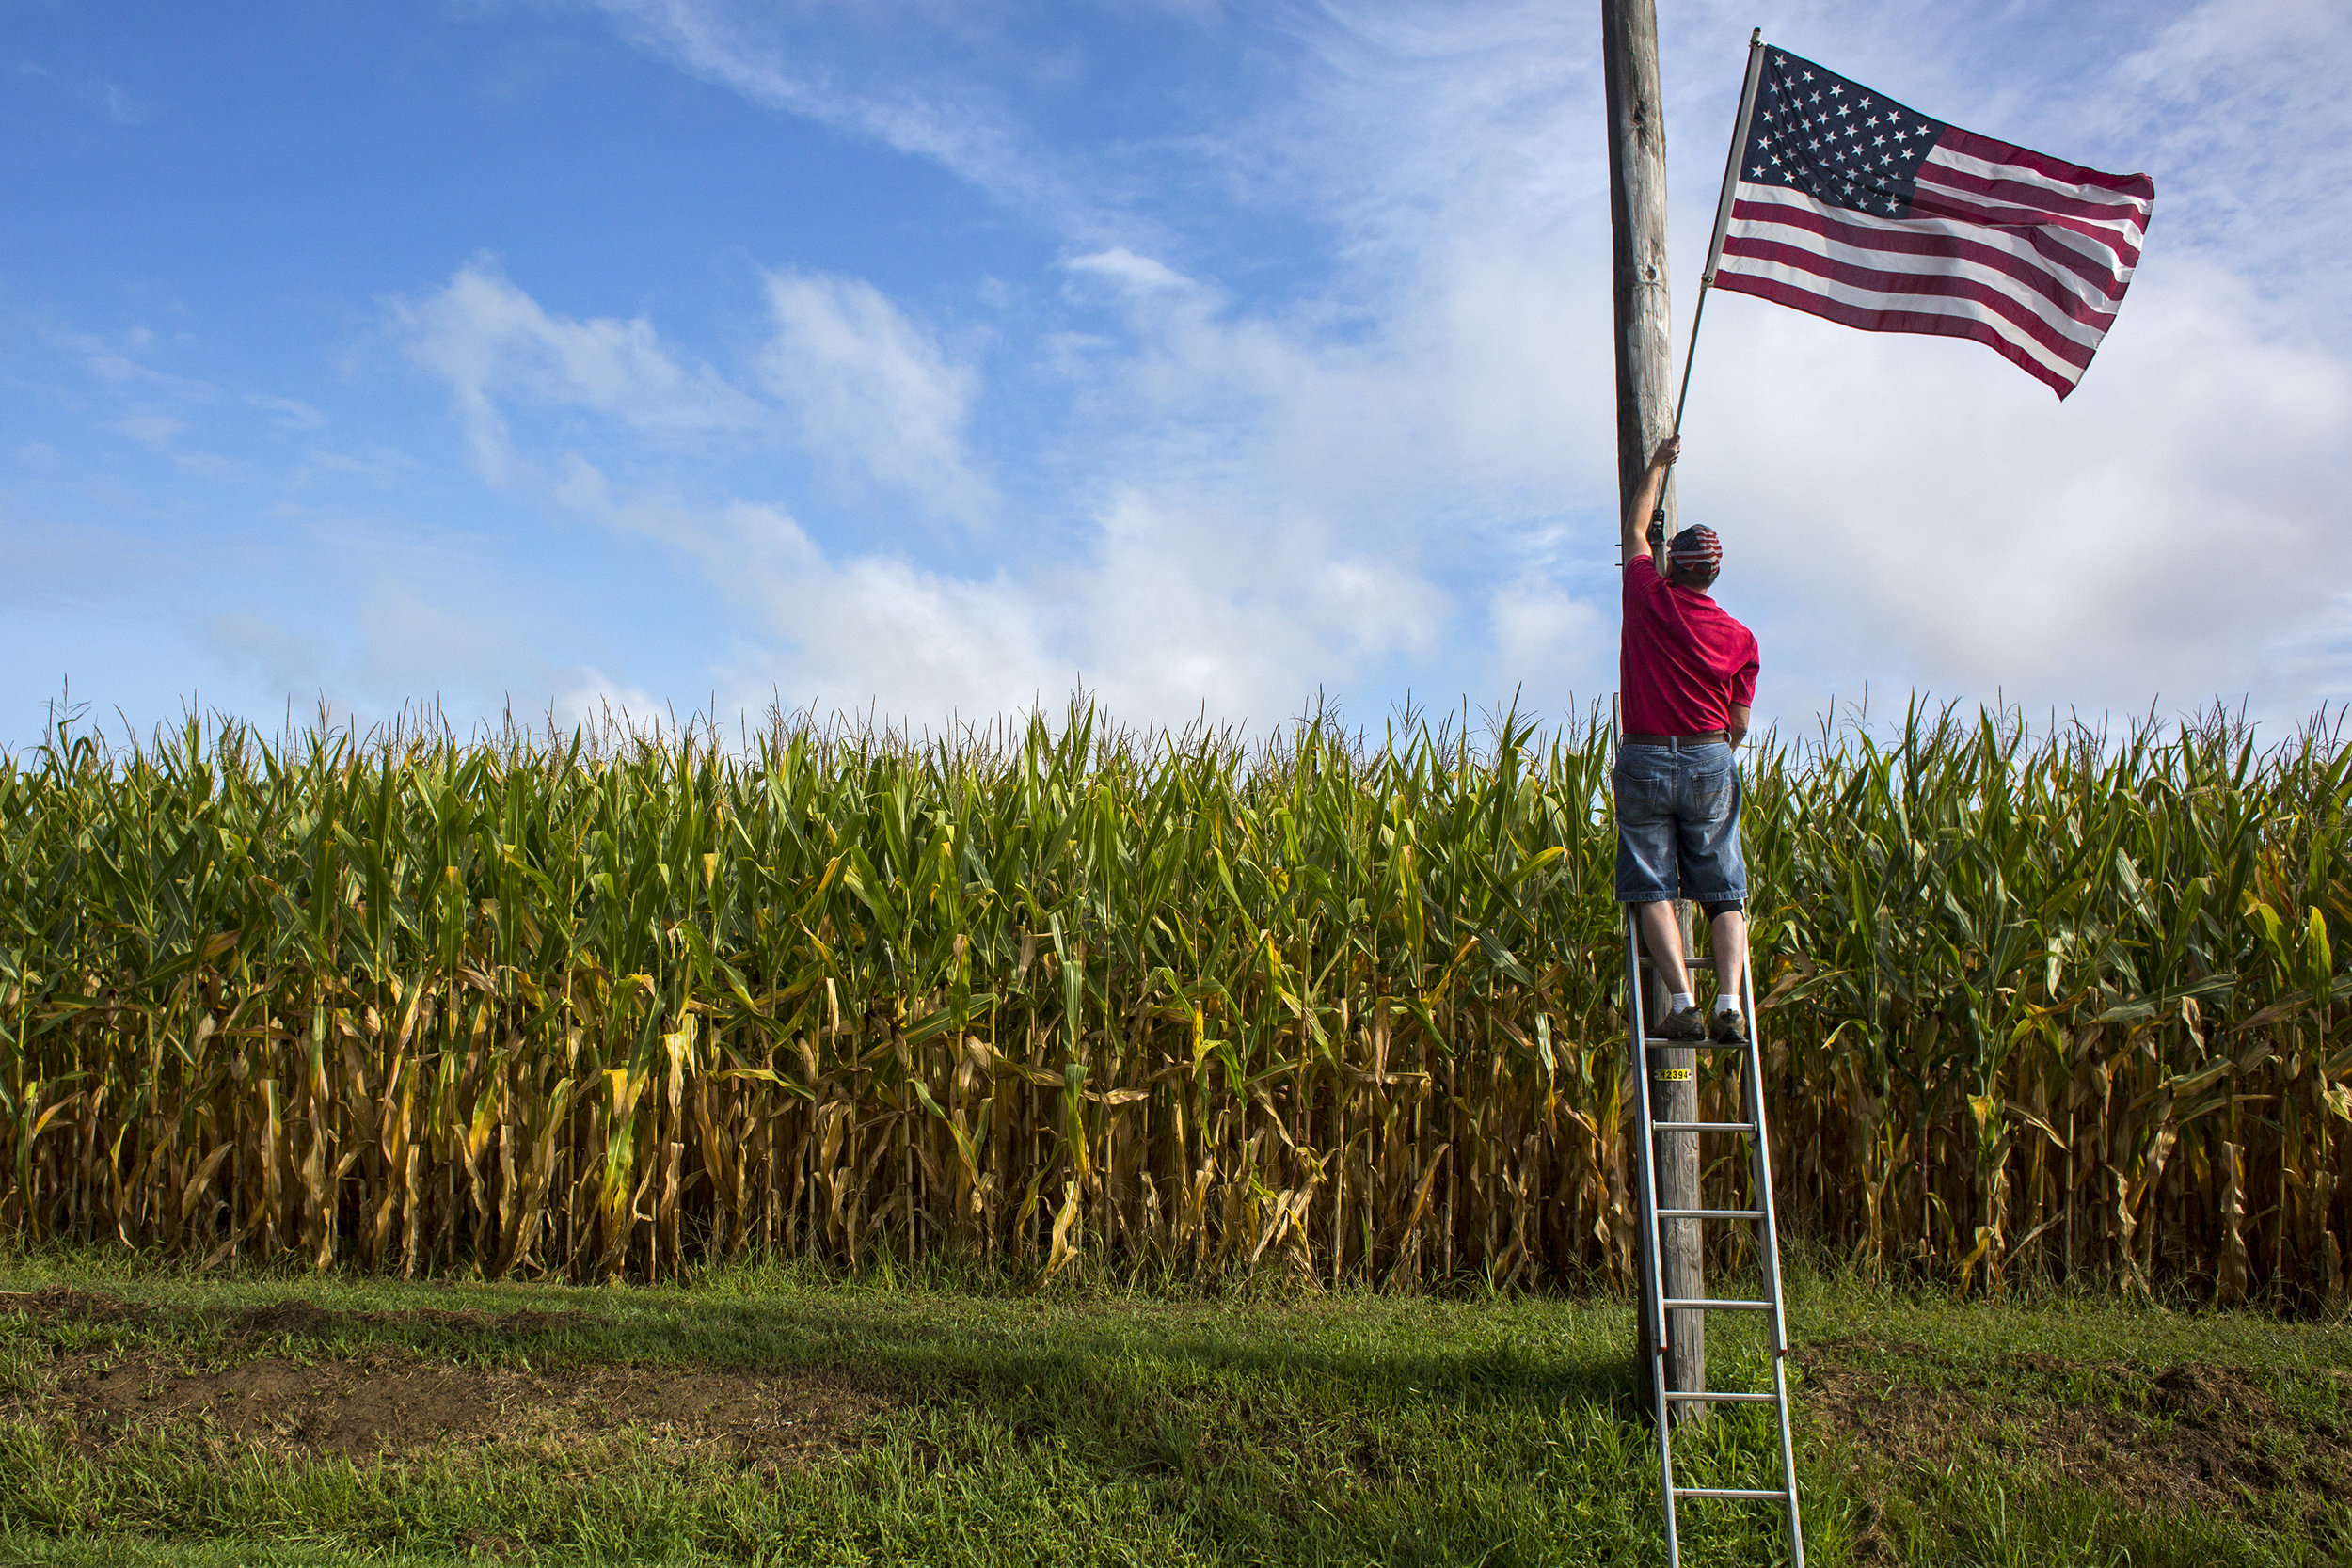 """For 30 years, Bob Meyer has placed American flags along roadways in his hometown of St. Henry. """"What started out as just decorations went much, much deeper. It's the symbol of freedom,"""" Meyer said Sept. 2 after completing a round of flag placement. """"And that ties in big time with all these veterans here in this town."""" He said his mother, Nip Meyer, was on the decorating committee when the community celebrated its 125th anniversary in 1987 and asked him to put up the flags initially. Three decades later, Meyer is still placing the flags out for Labor Day, Memorial Day, Fourth of July, Veterans Day, September 11 and the community's annual festival. """"When I started I thought, 'Well I'll do them as long as my mom wants me to,"""" he said. """"And then bless her heart, she's still here today for this 30th anniversary."""" — Sept. 2, 2017, St. Henry, Indiana."""